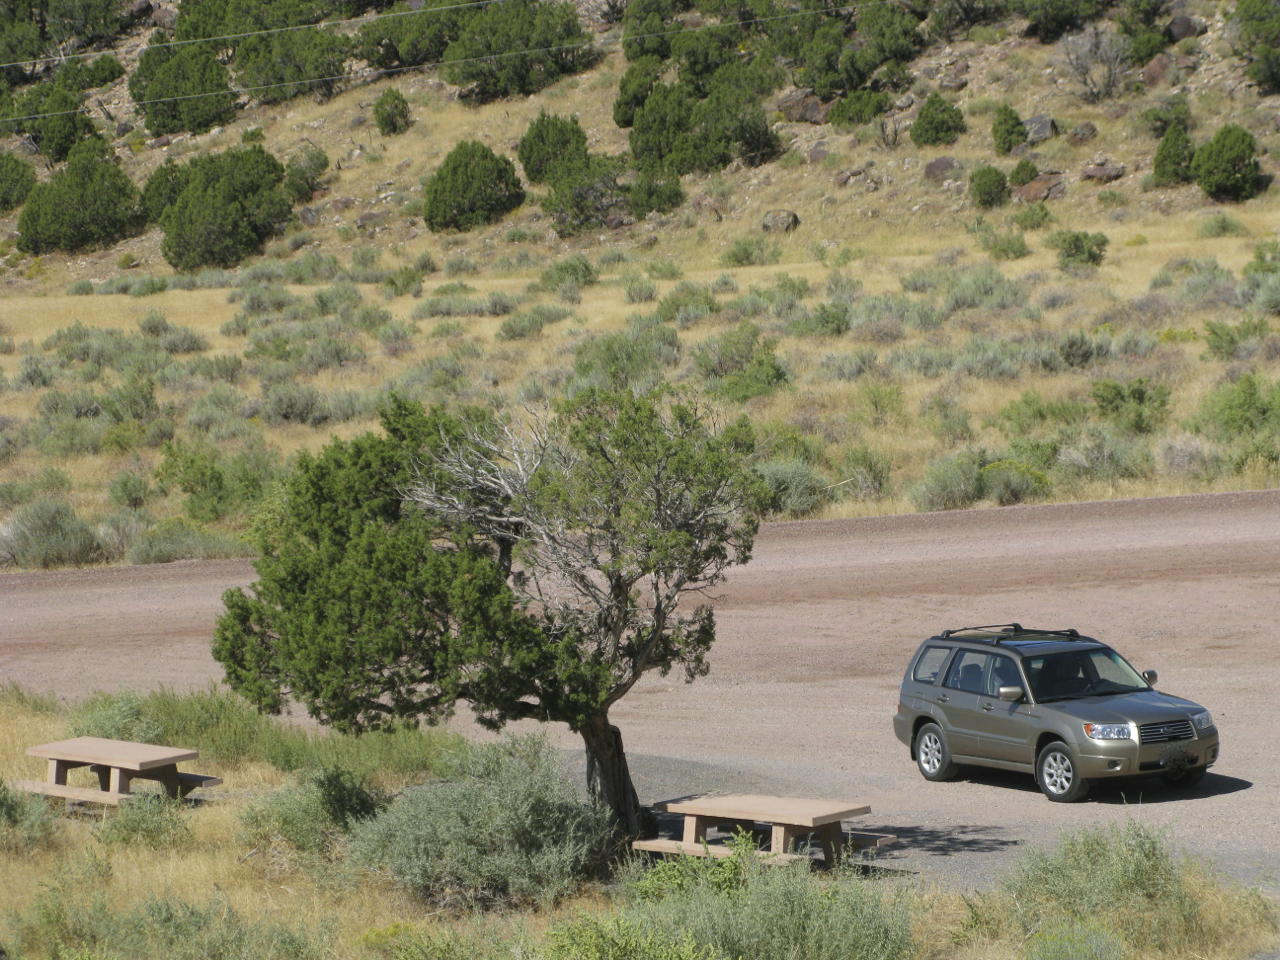 The Forester at the petroglyphs in Irish Canyon, Colorado.